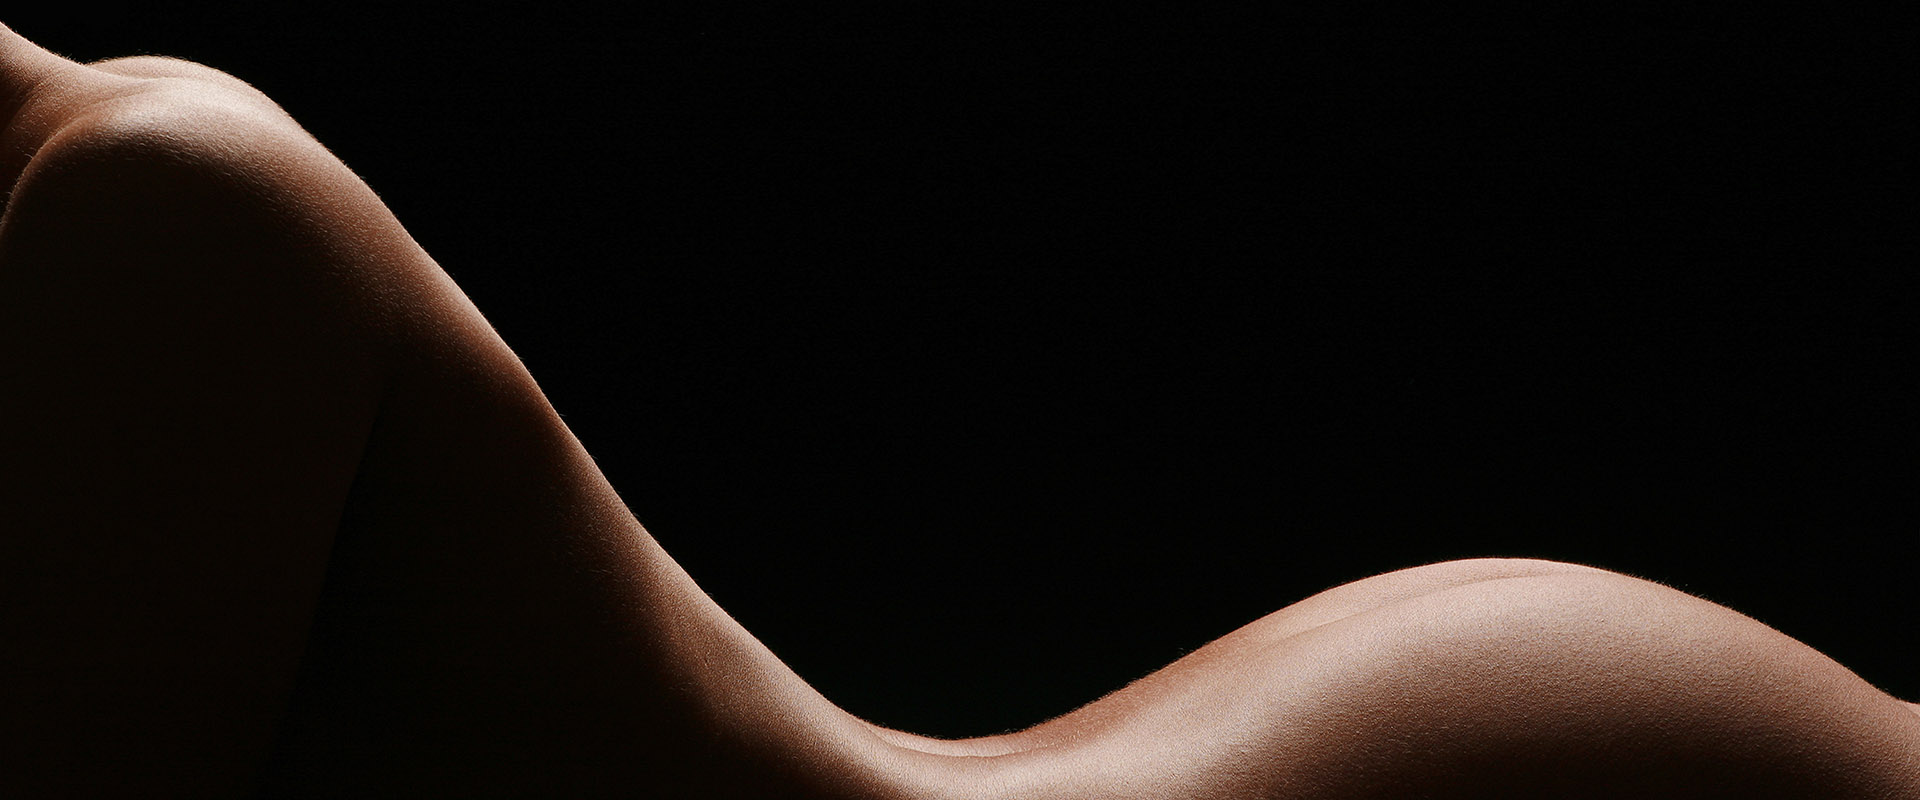 Silhouette of womans tanned naked torso and buttocks on black background.